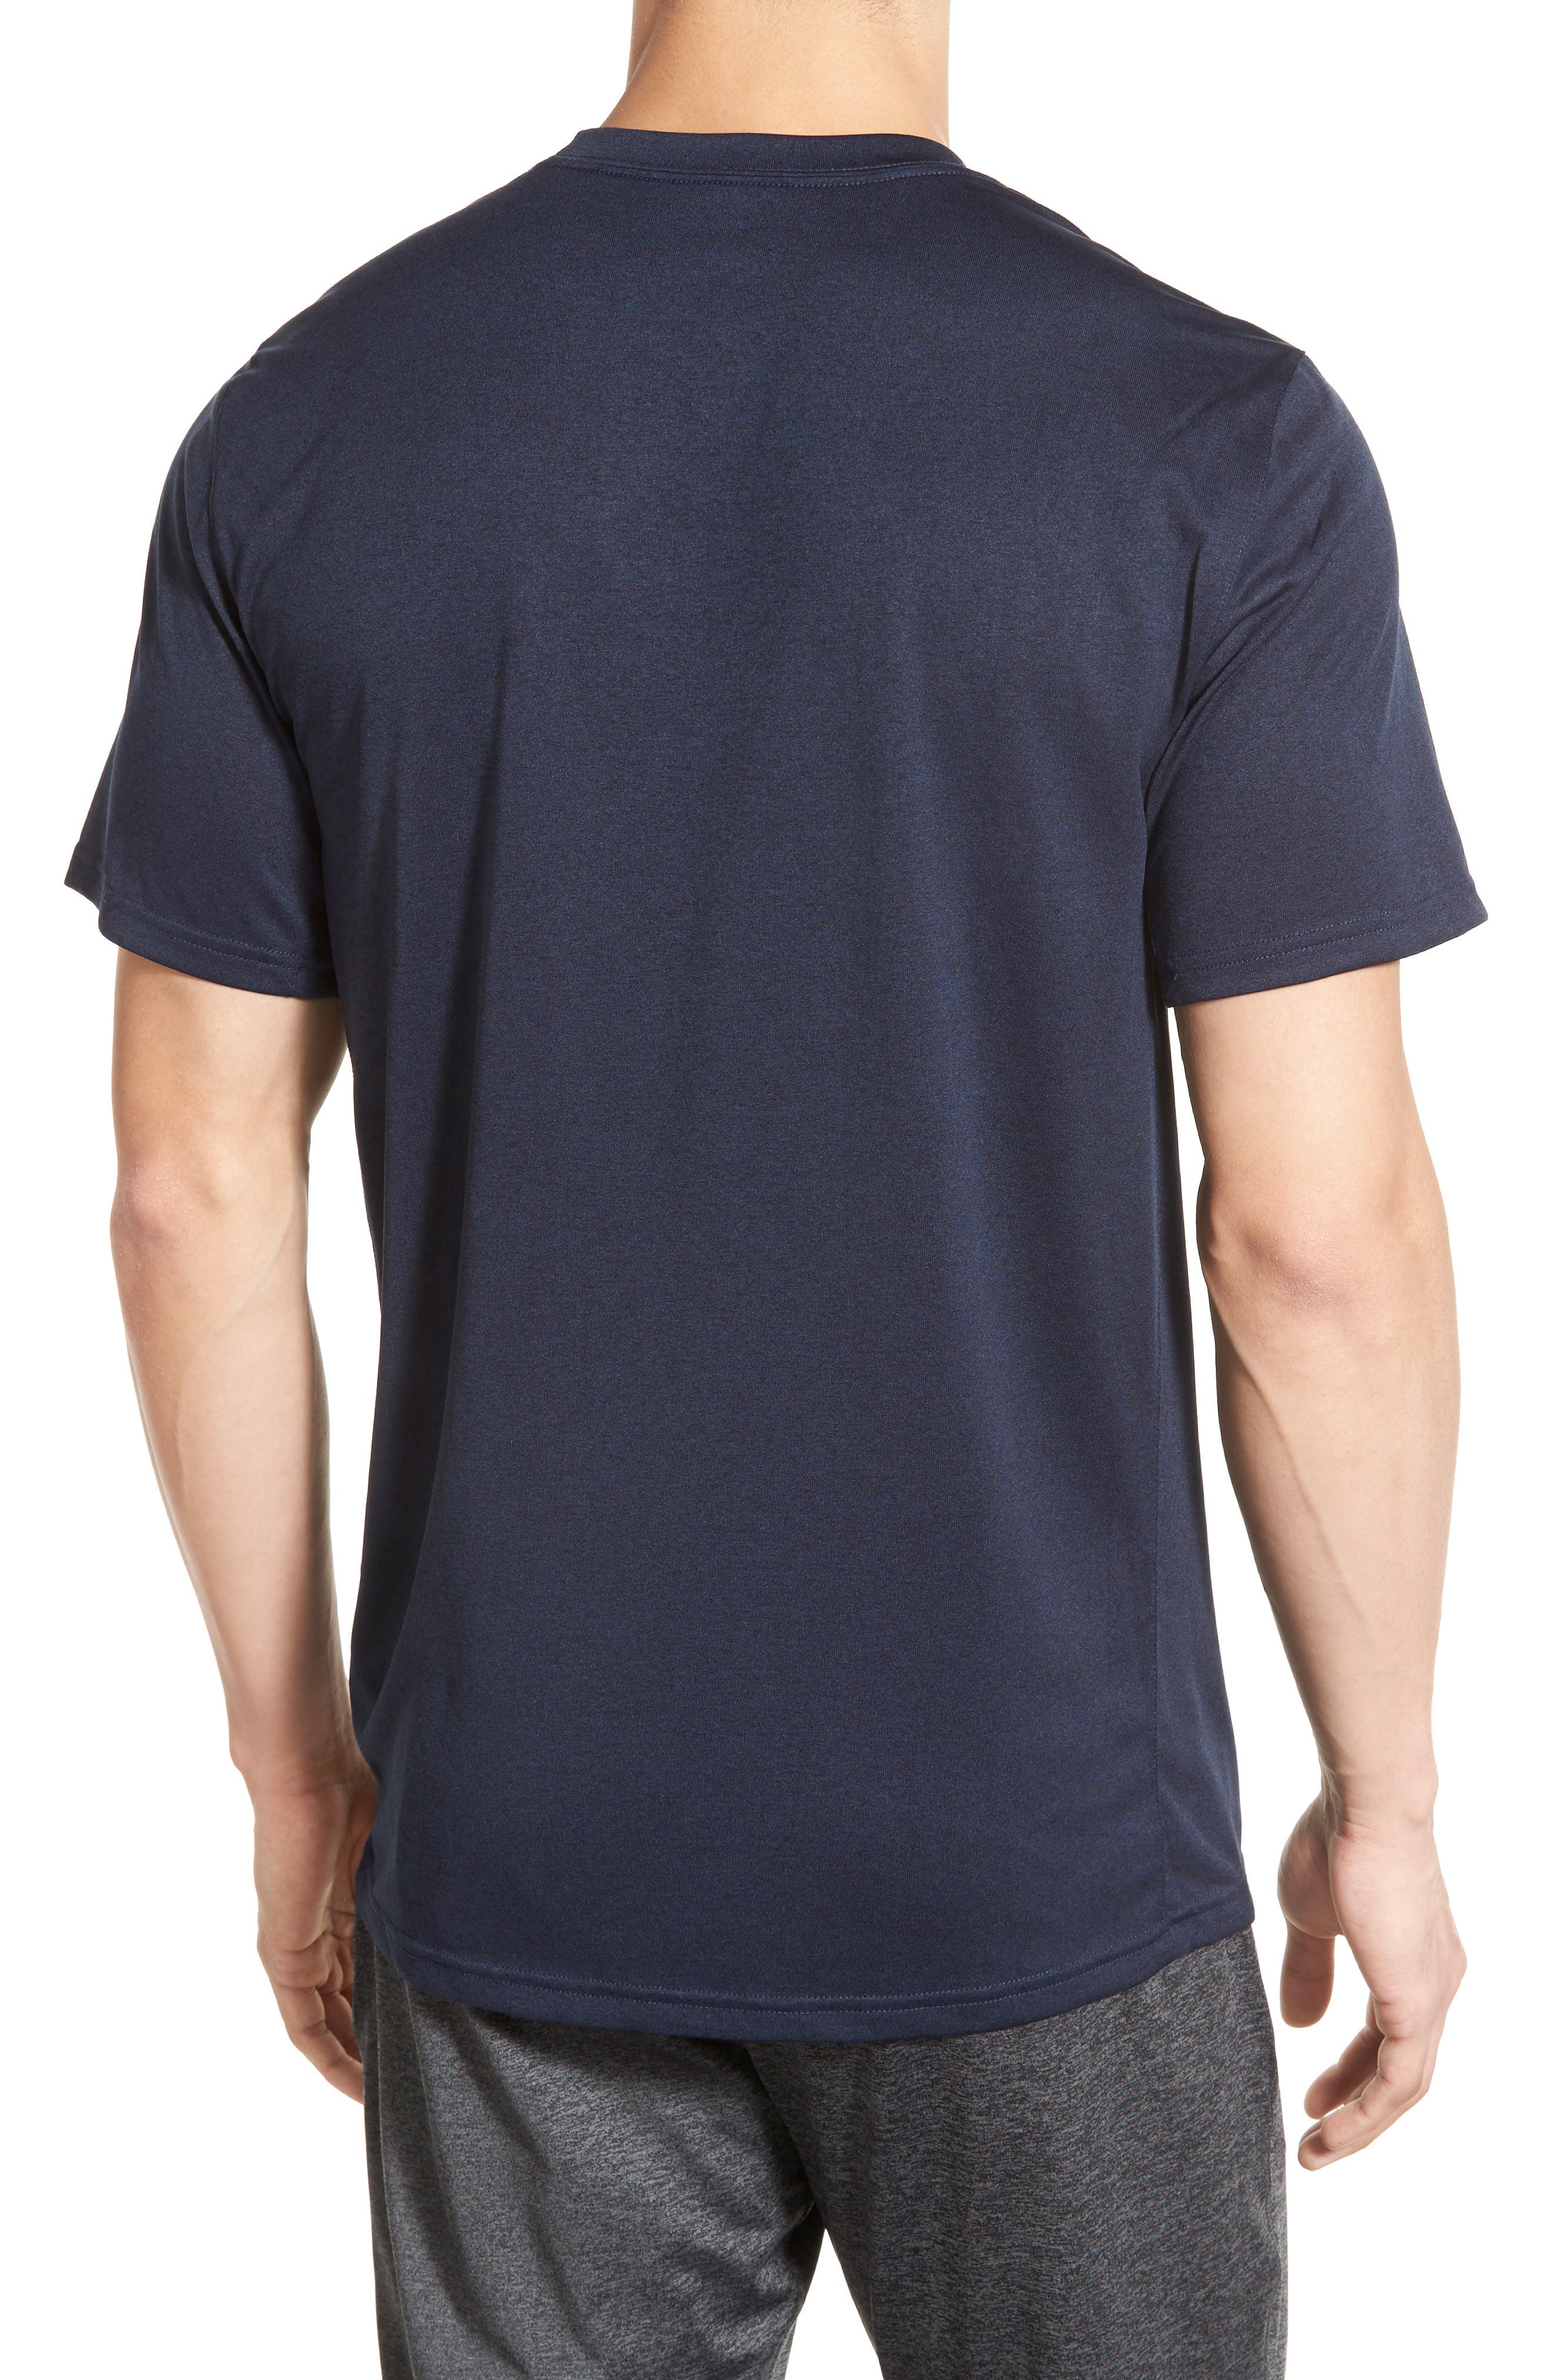 Legend 2.0 Dri-FIT Graphic T-Shirt,                         Main,                         color, OBSIDIAN/BLACK/MATTE SILVER